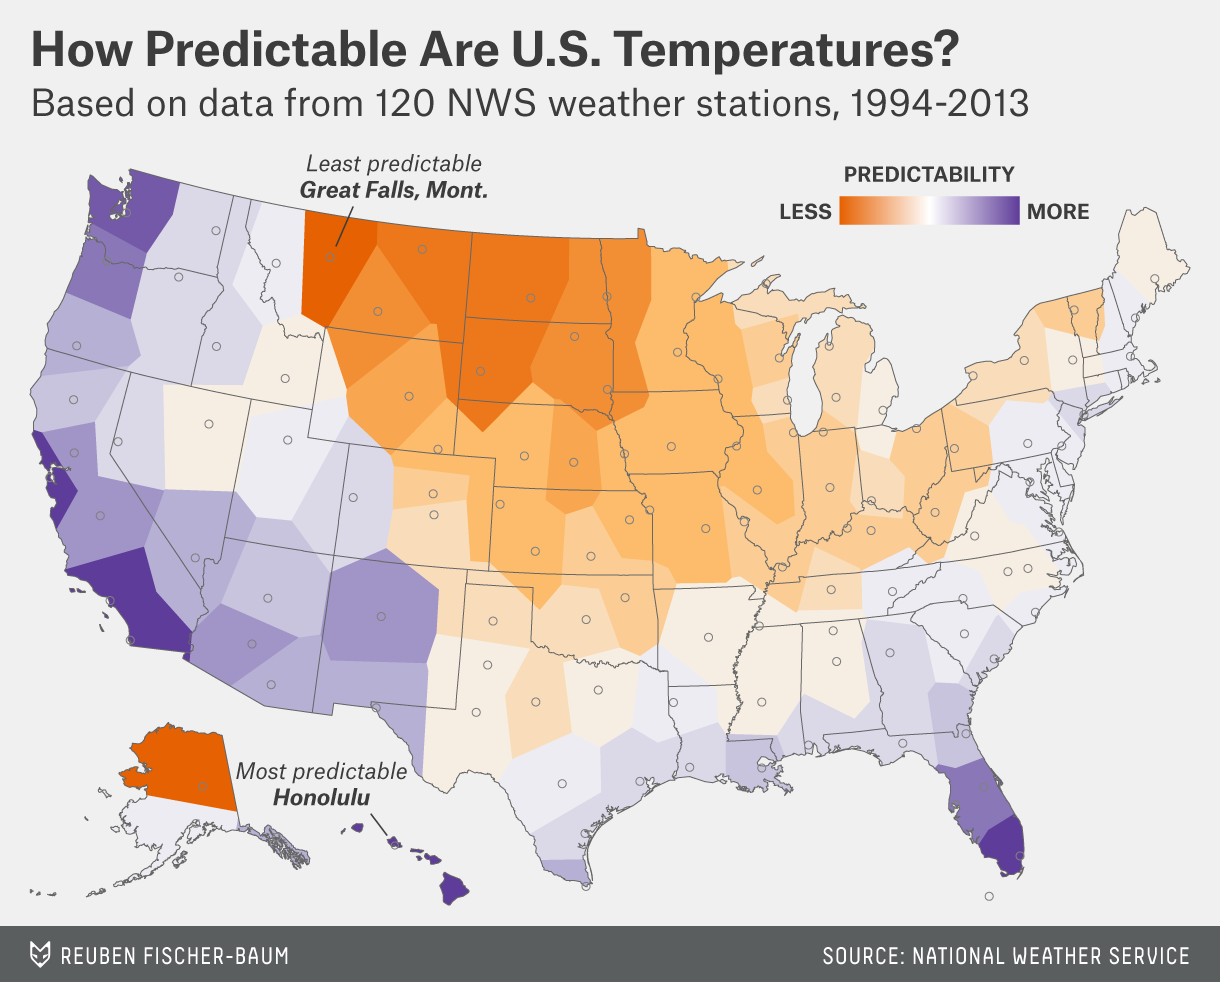 Compare the climate of the peninsulas - California and Florida. Where is better